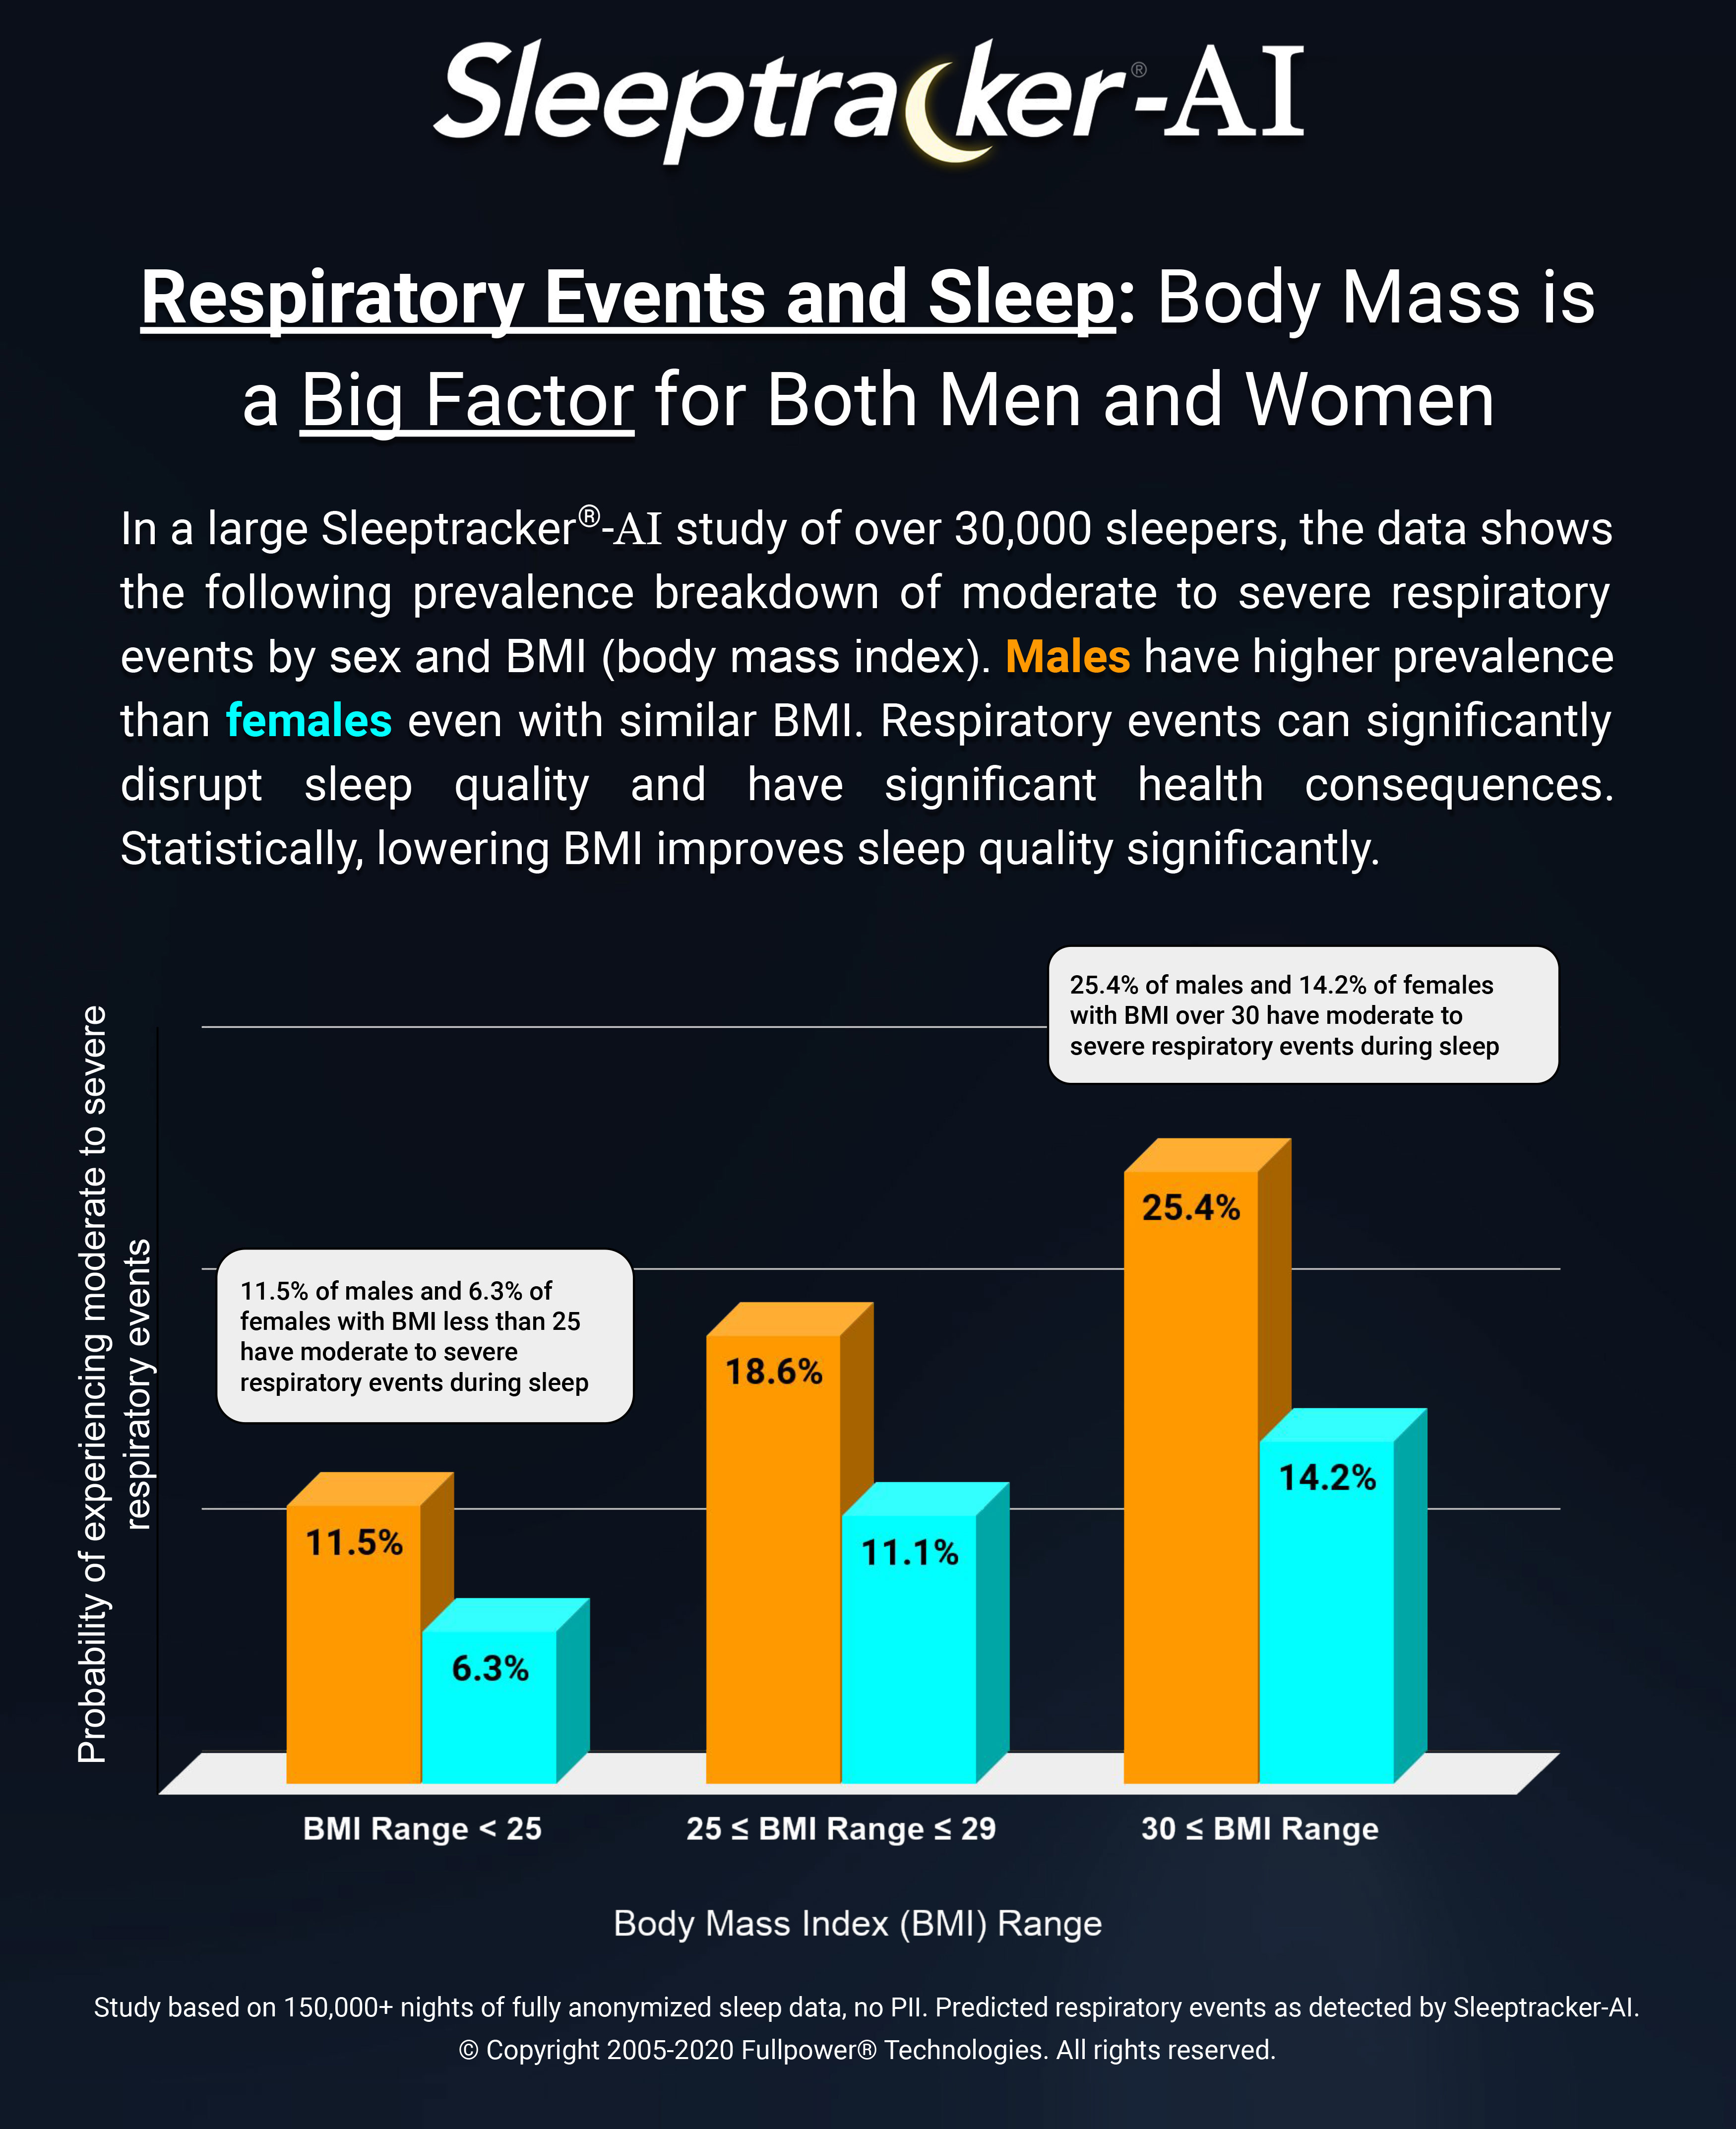 Respiratory Events and Sleep: Body Mass is a Big Factor for Both Men and Women